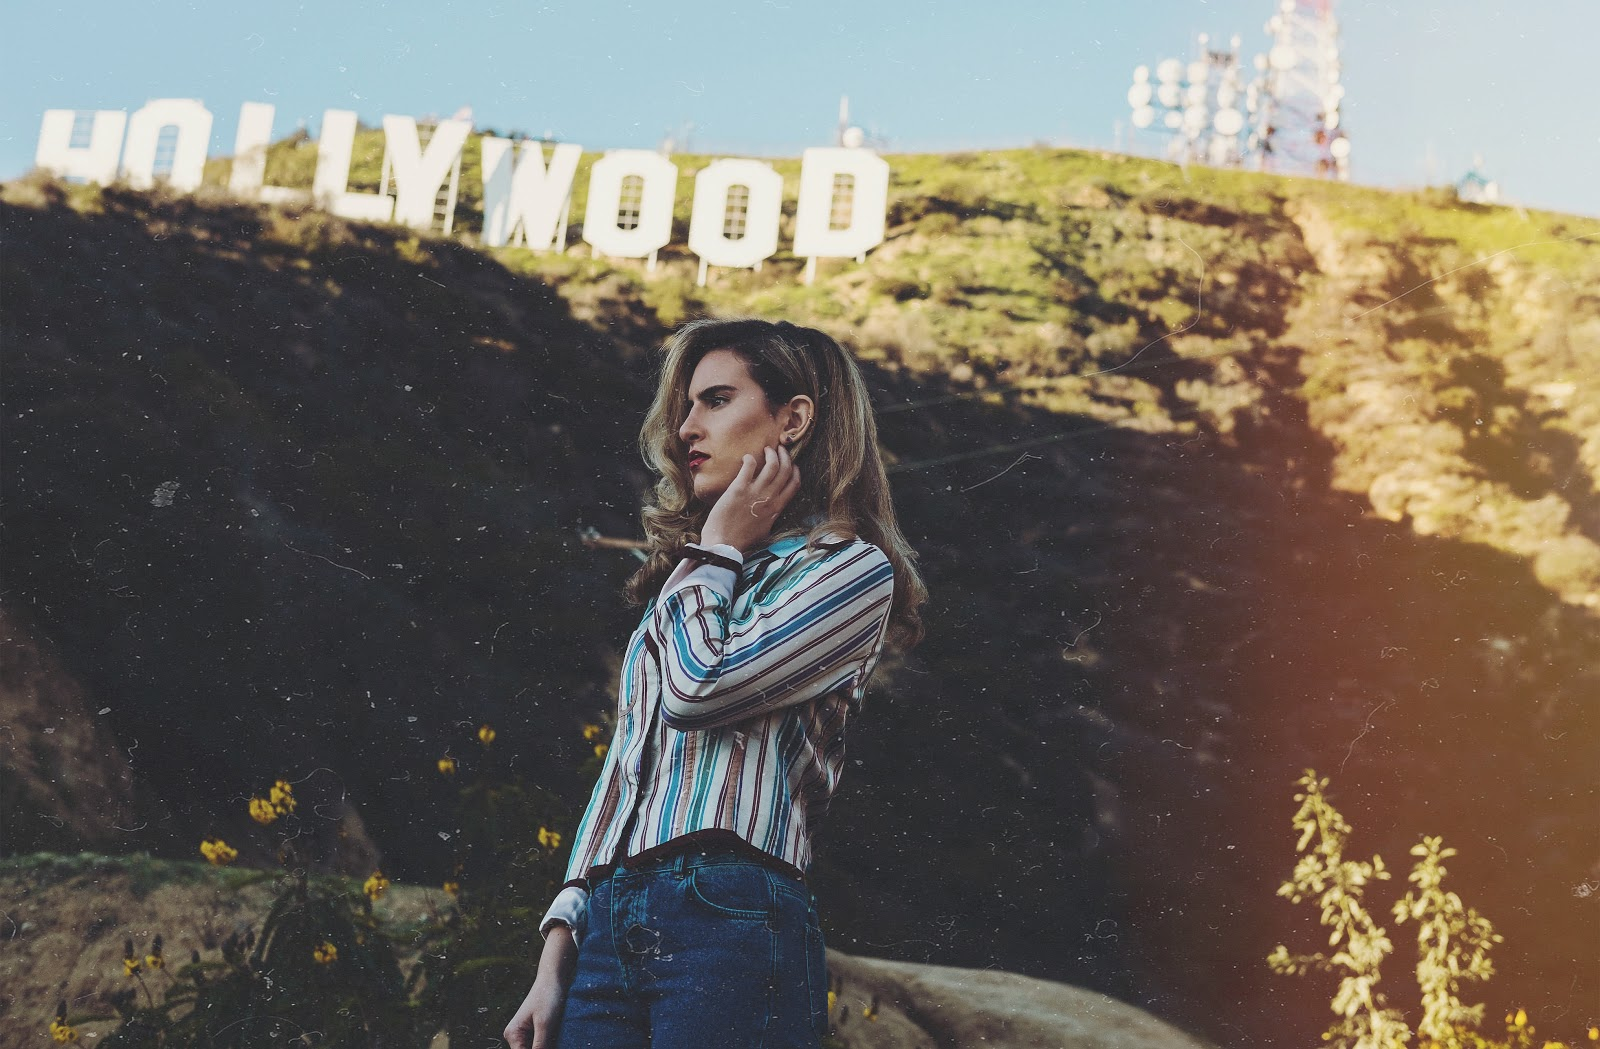 Tamtam singer in front of Hollywood sign